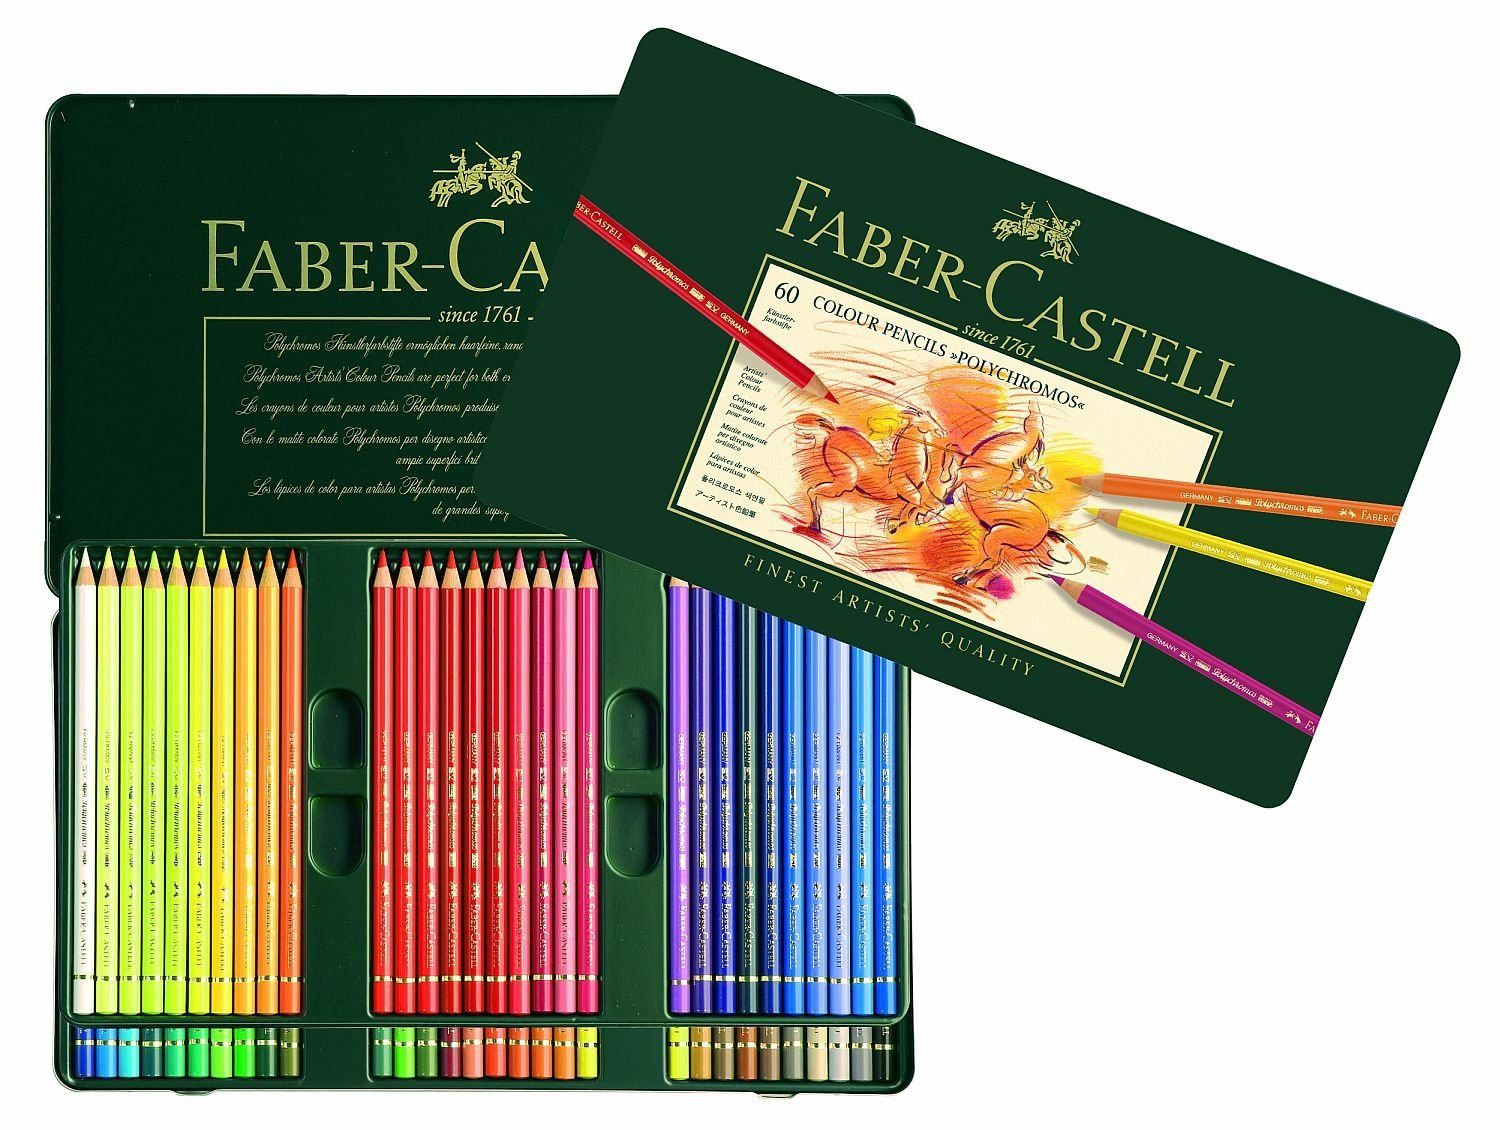 60 faber castell polychromos colored pencils colored pencil set coloring pencils tin. Black Bedroom Furniture Sets. Home Design Ideas